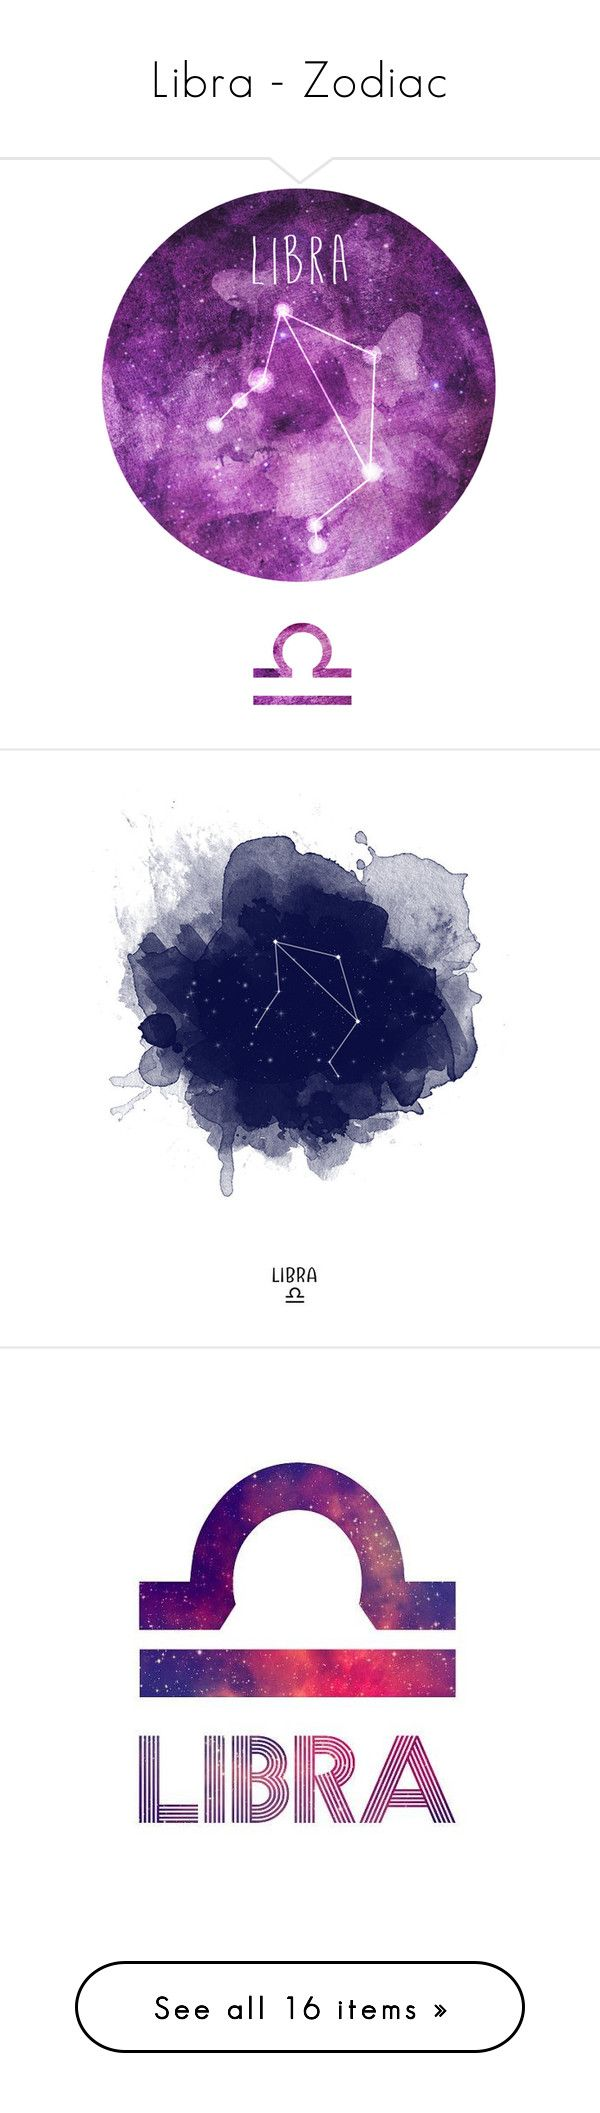 Libra Zodiac By Megiem Liked On Polyvore Featuring Home Decor